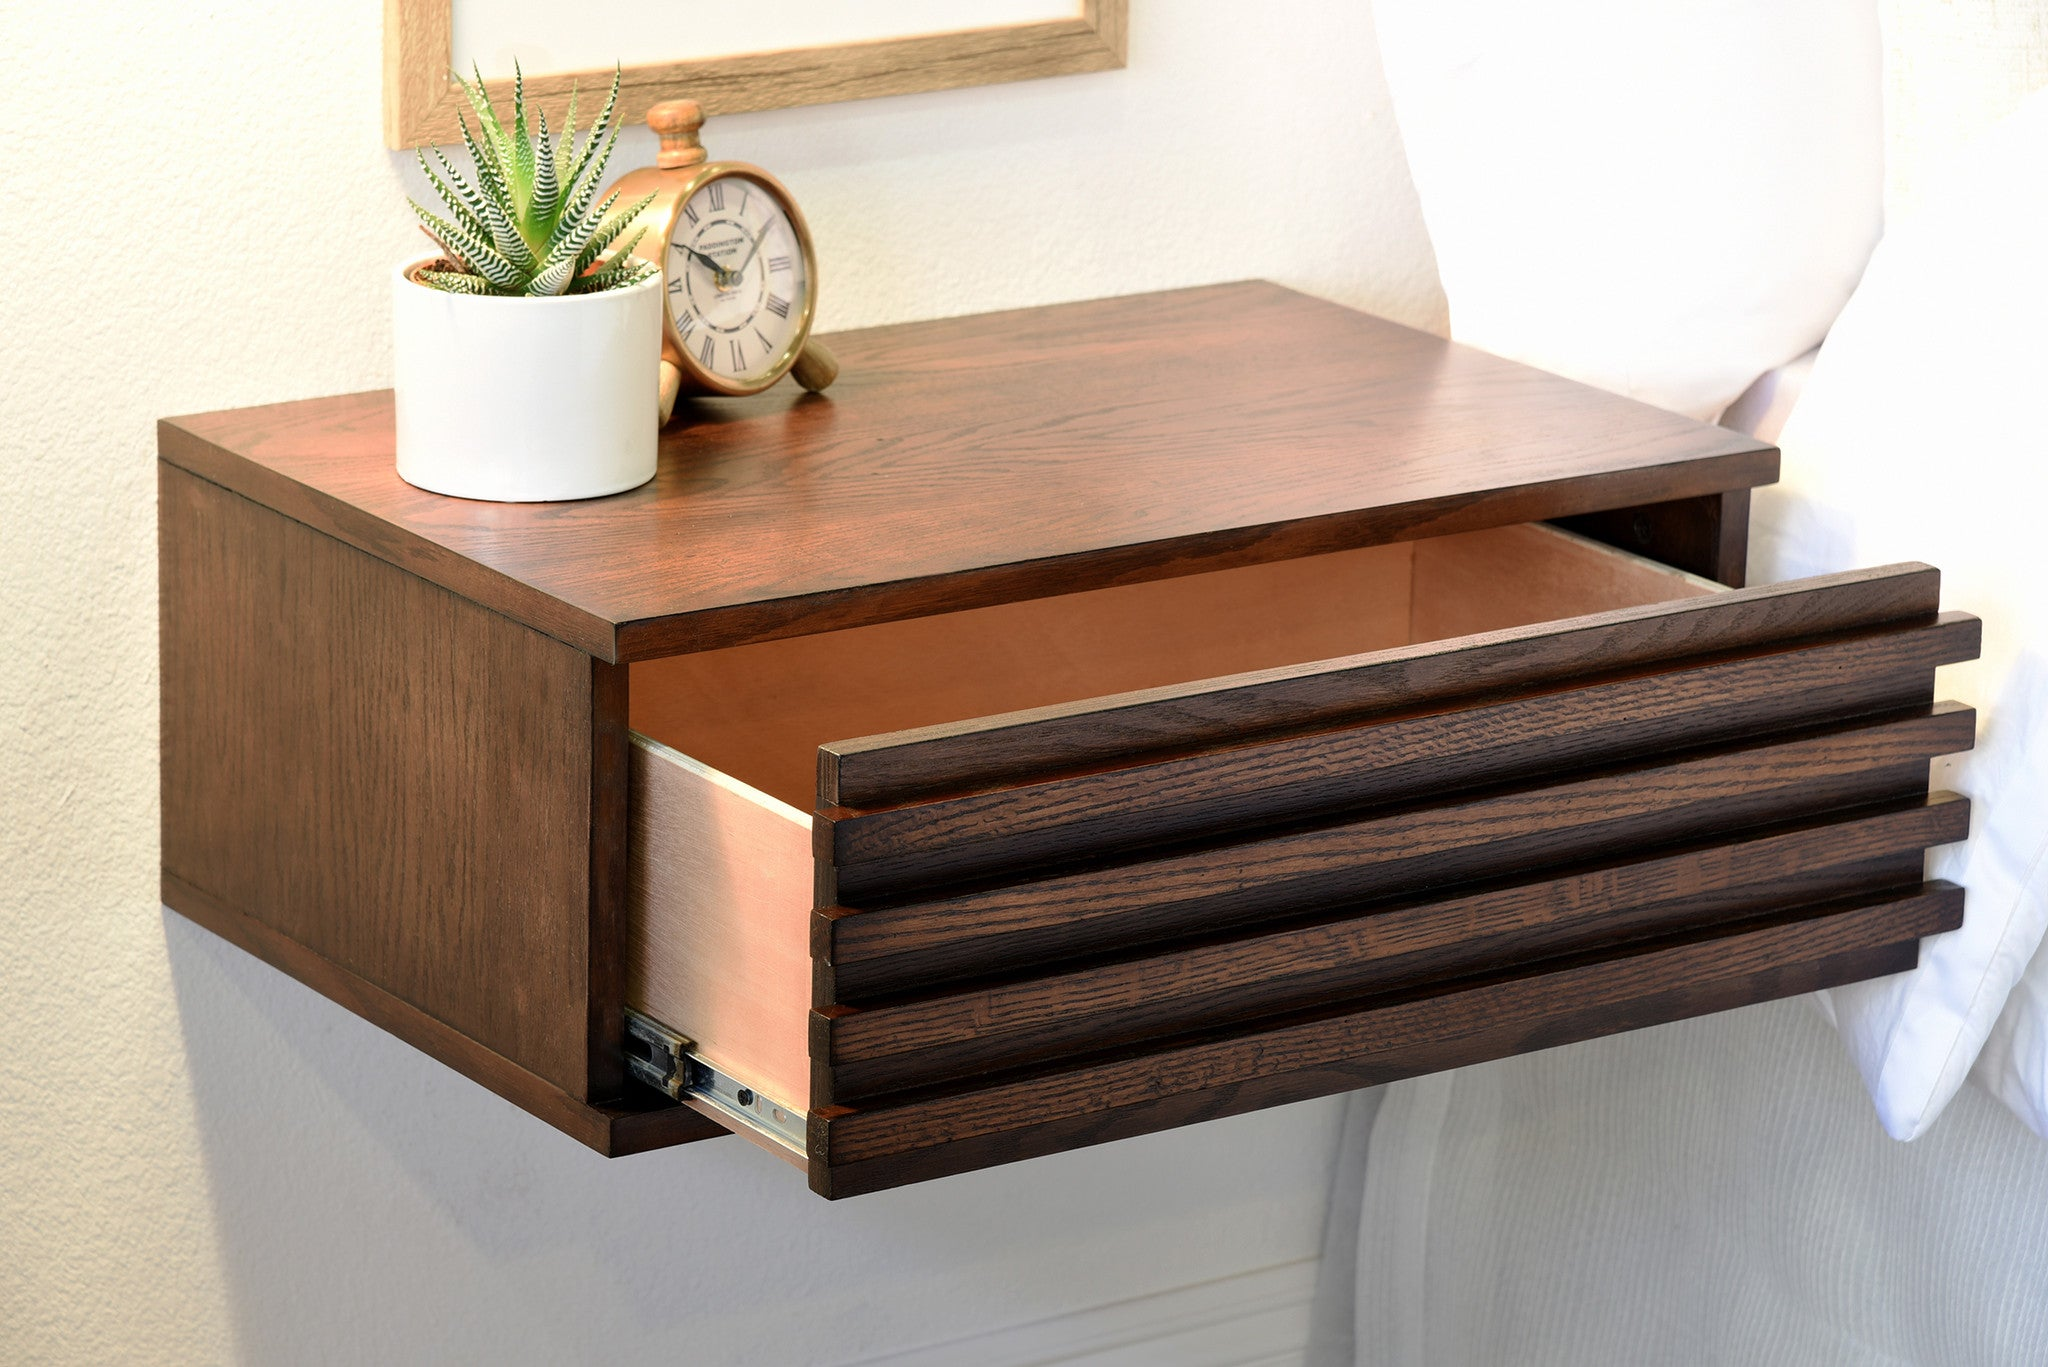 Awesome Pair Of Floating Nightstand Drawers   Lotus   Russet Brown